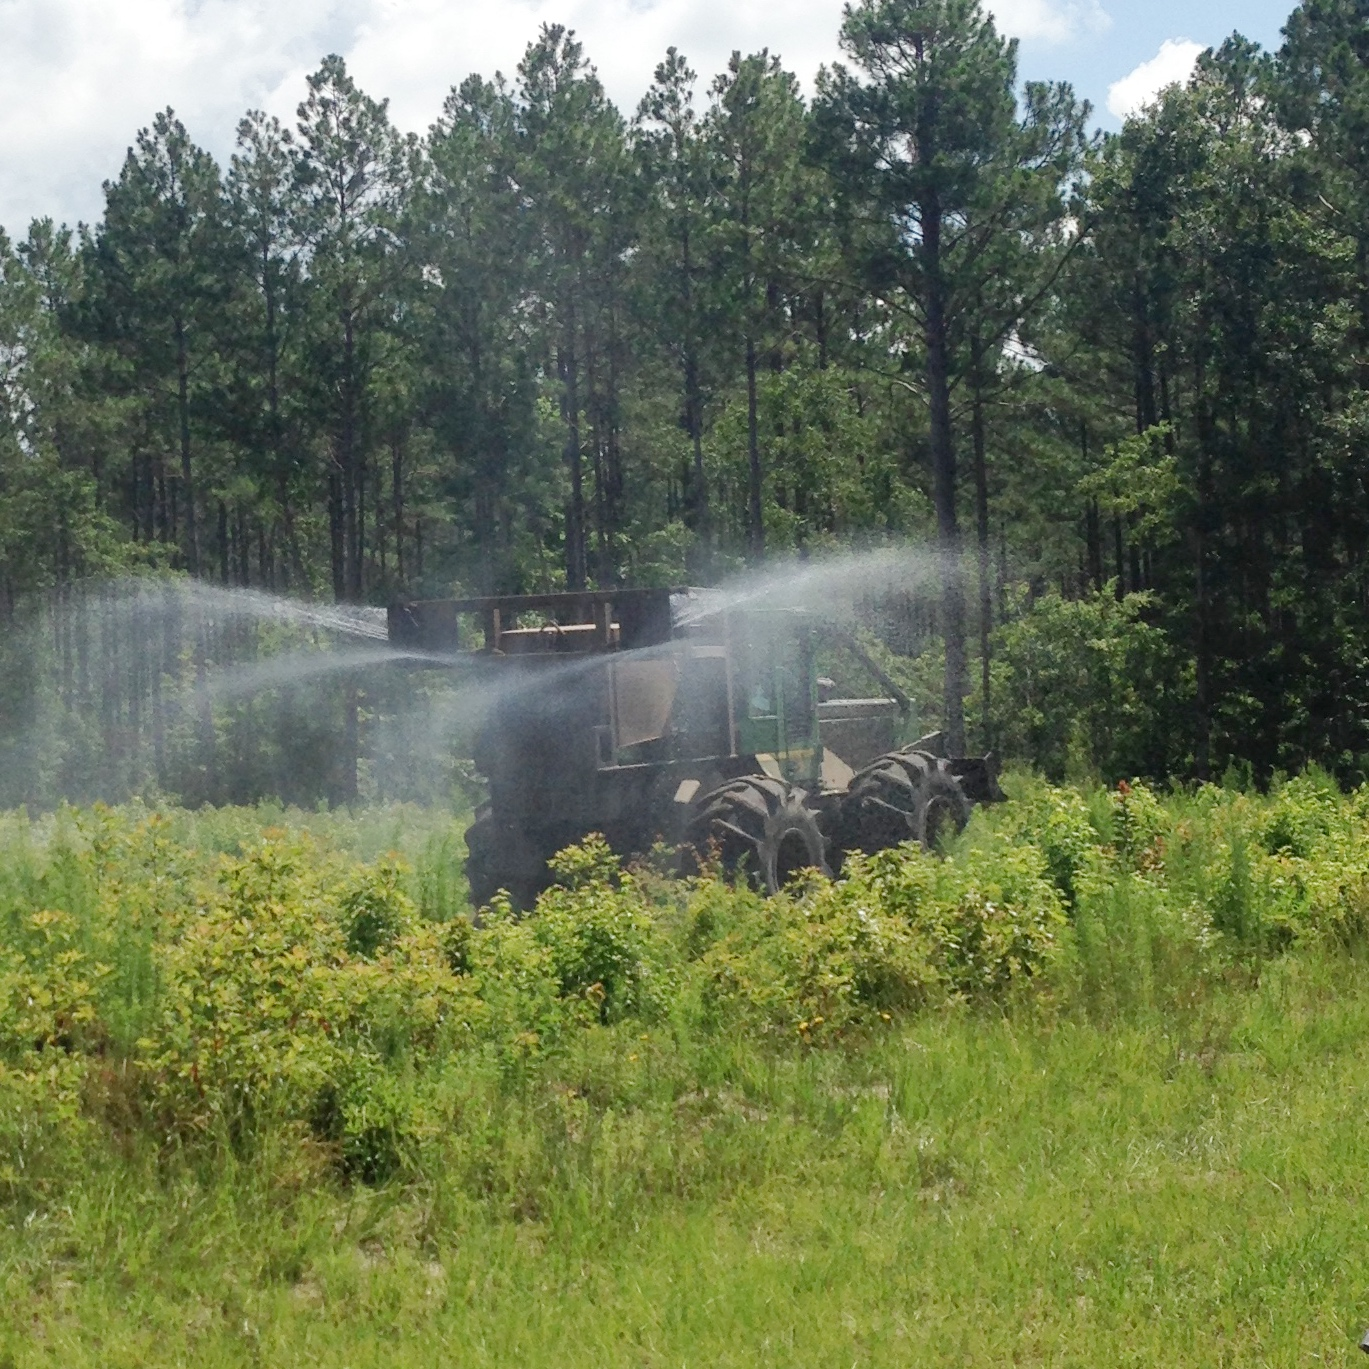 Skidder Spraying